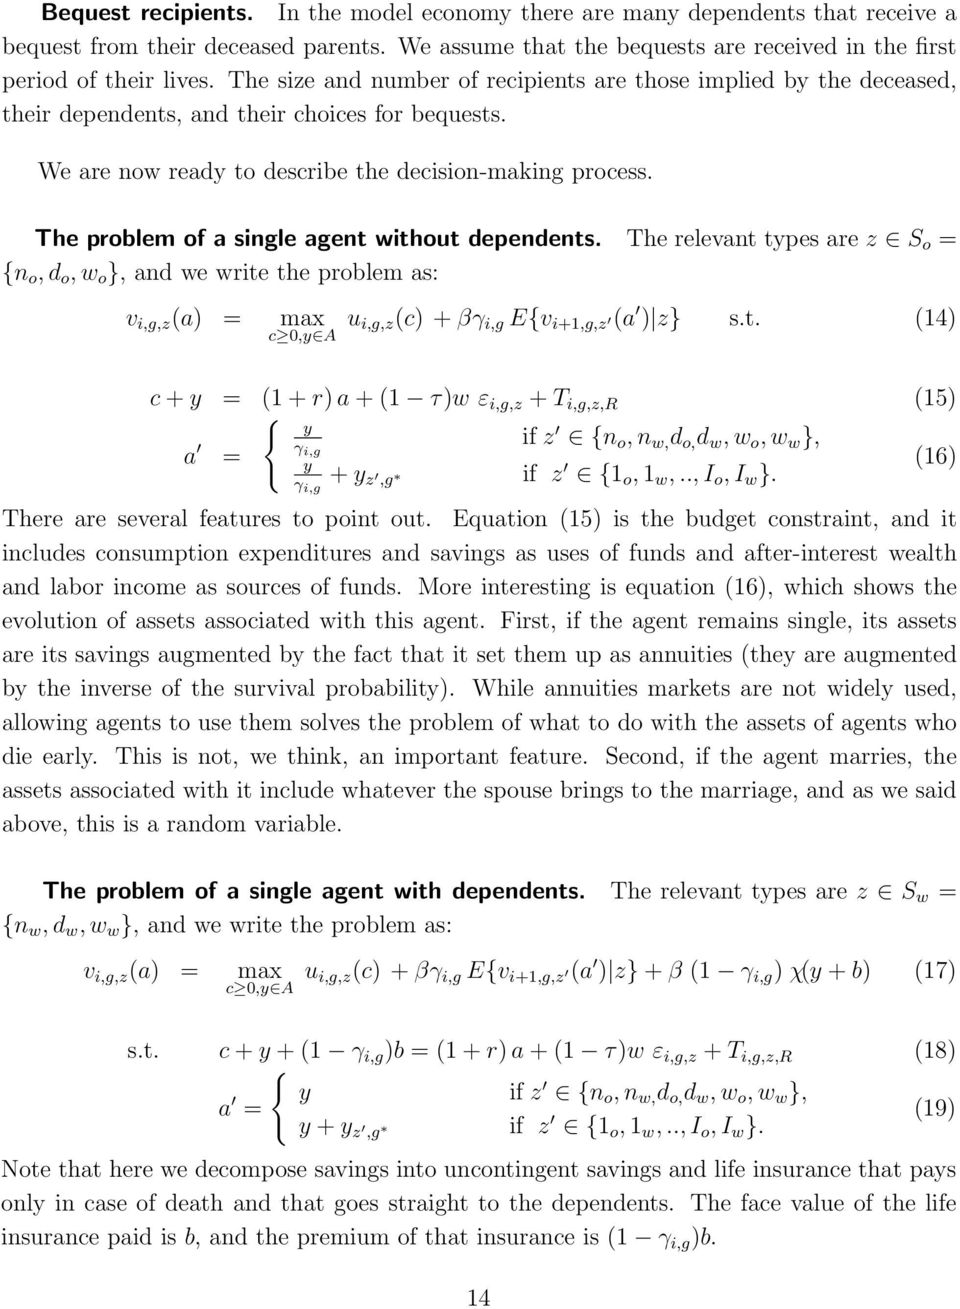 The problem of a single agent without dependents. The relevant types are z S o = {n o, d o, w o }, and we write the problem as: v i,g,z (a) = max c,y A u i,g,z(c) + βγ i,g E{v i+1,g,z (a ) z} s.t. (1) c + y = (1 + r) a + (1 τ)w ε i,g,z + T i,g,z,r (15) { y a γ = i,g if z {n o, n w, d o, d w, w o, w w }, y γ i,g + y z,g if (1) z {1 o, 1 w,.